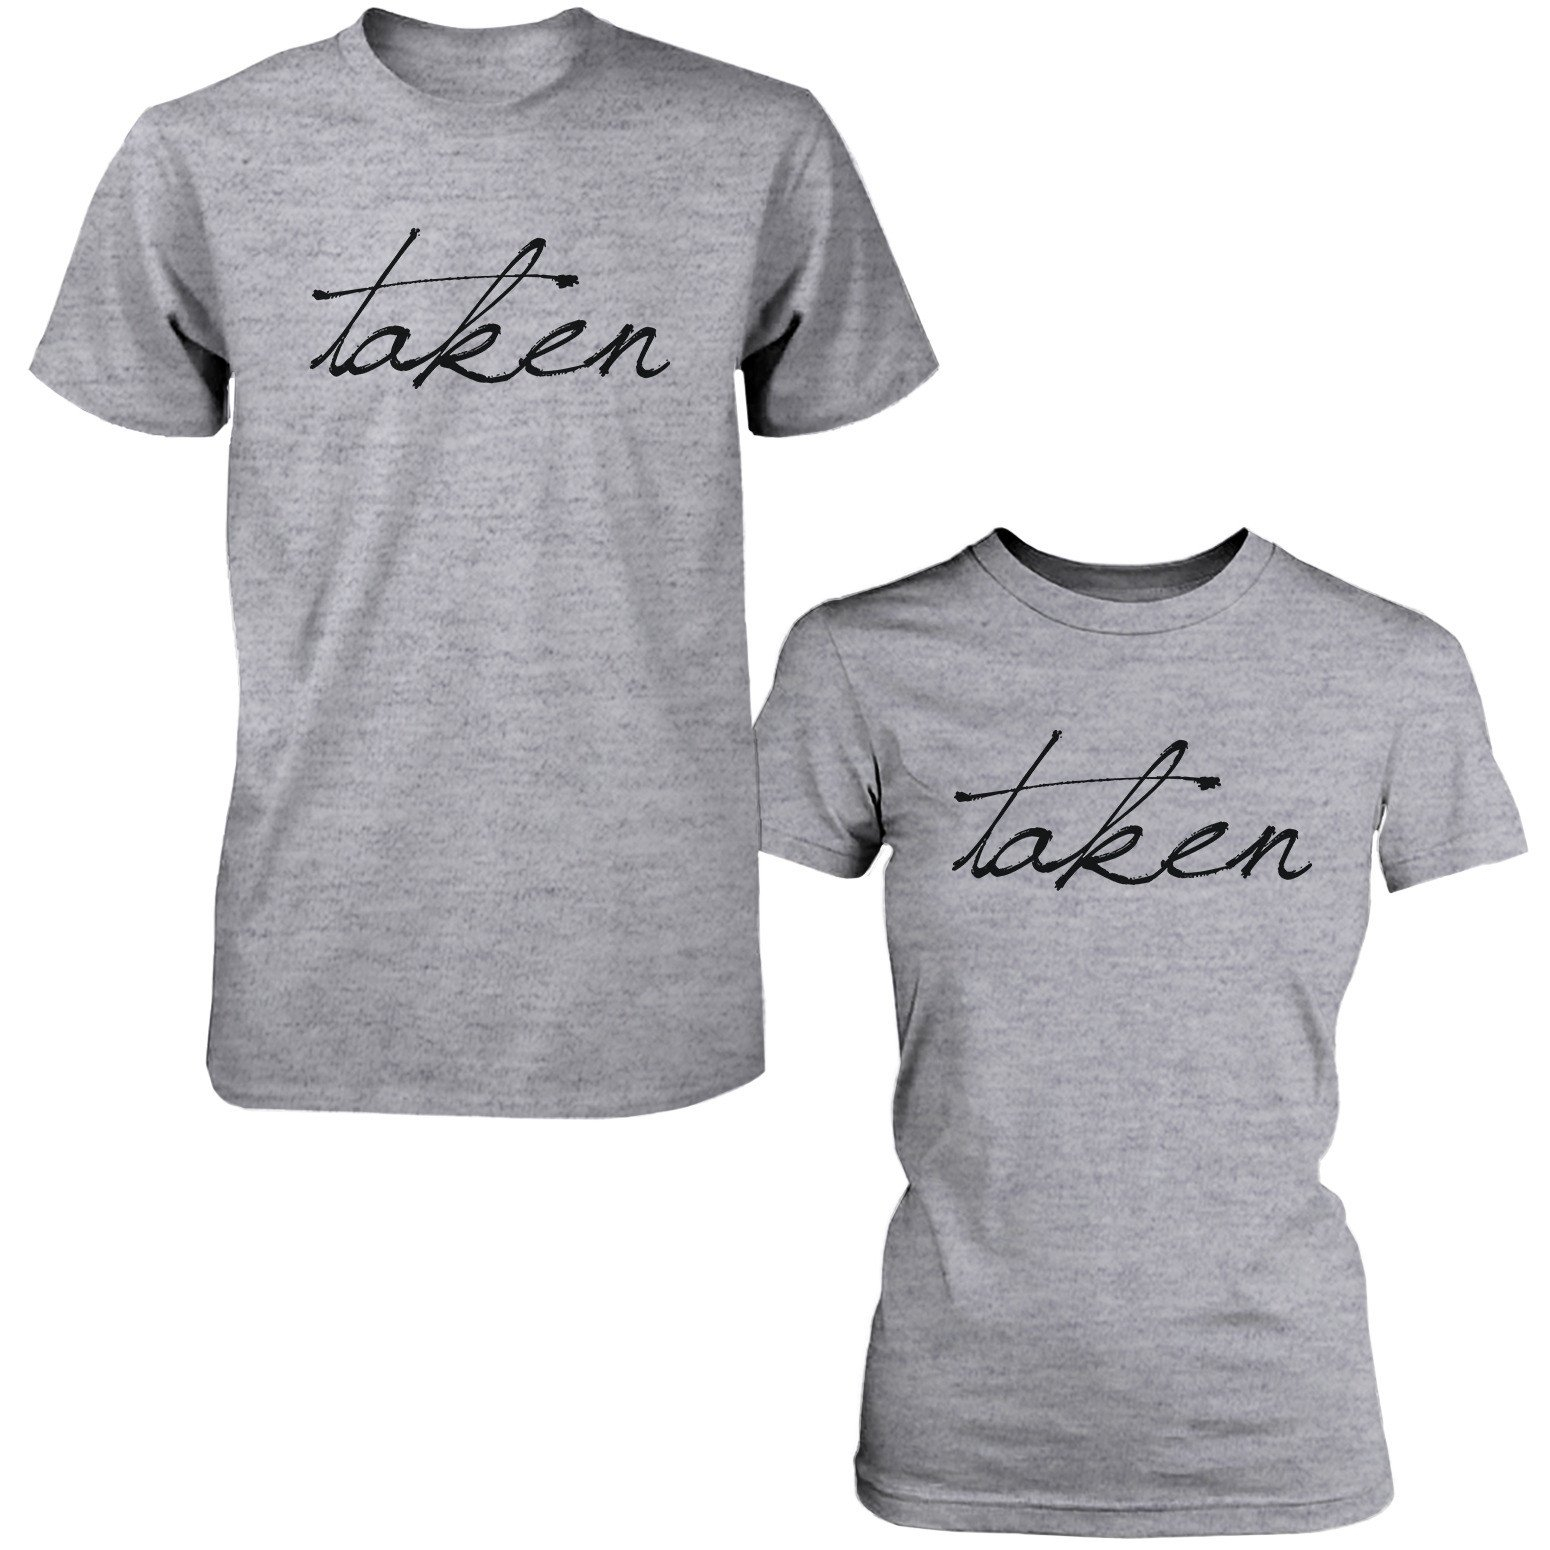 9f309c4803 365 Printing Inc $30.99. Cute Taken Matching Couple T-Shirts Funny Gift for  Couples and Newlyweds